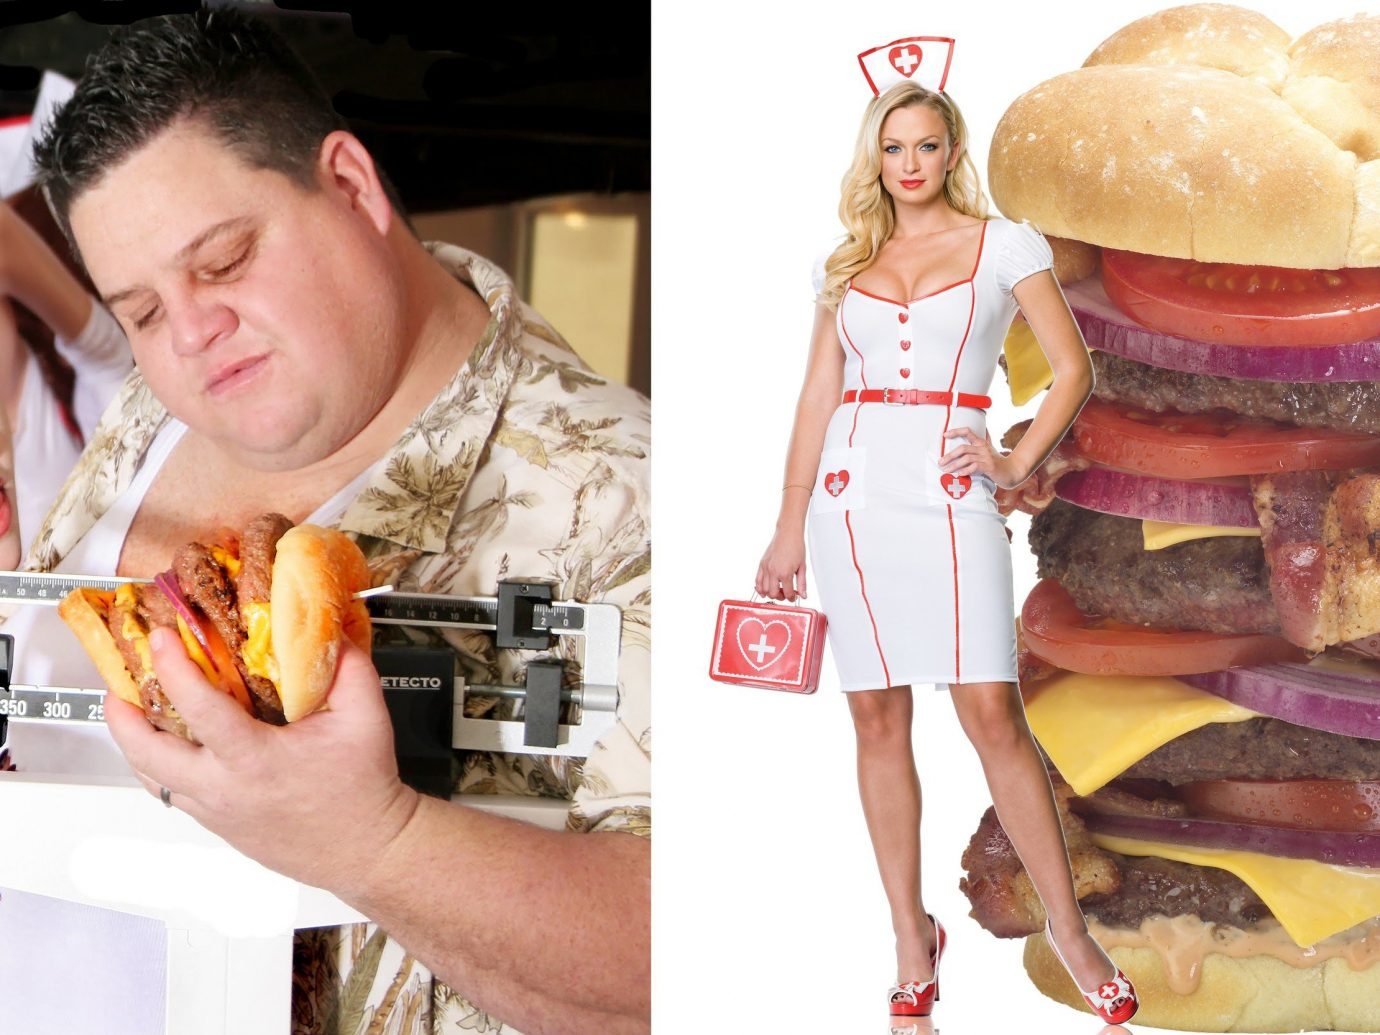 Offbeat person food human action snack food sandwich fast food meal eating sense junk food lunch meat